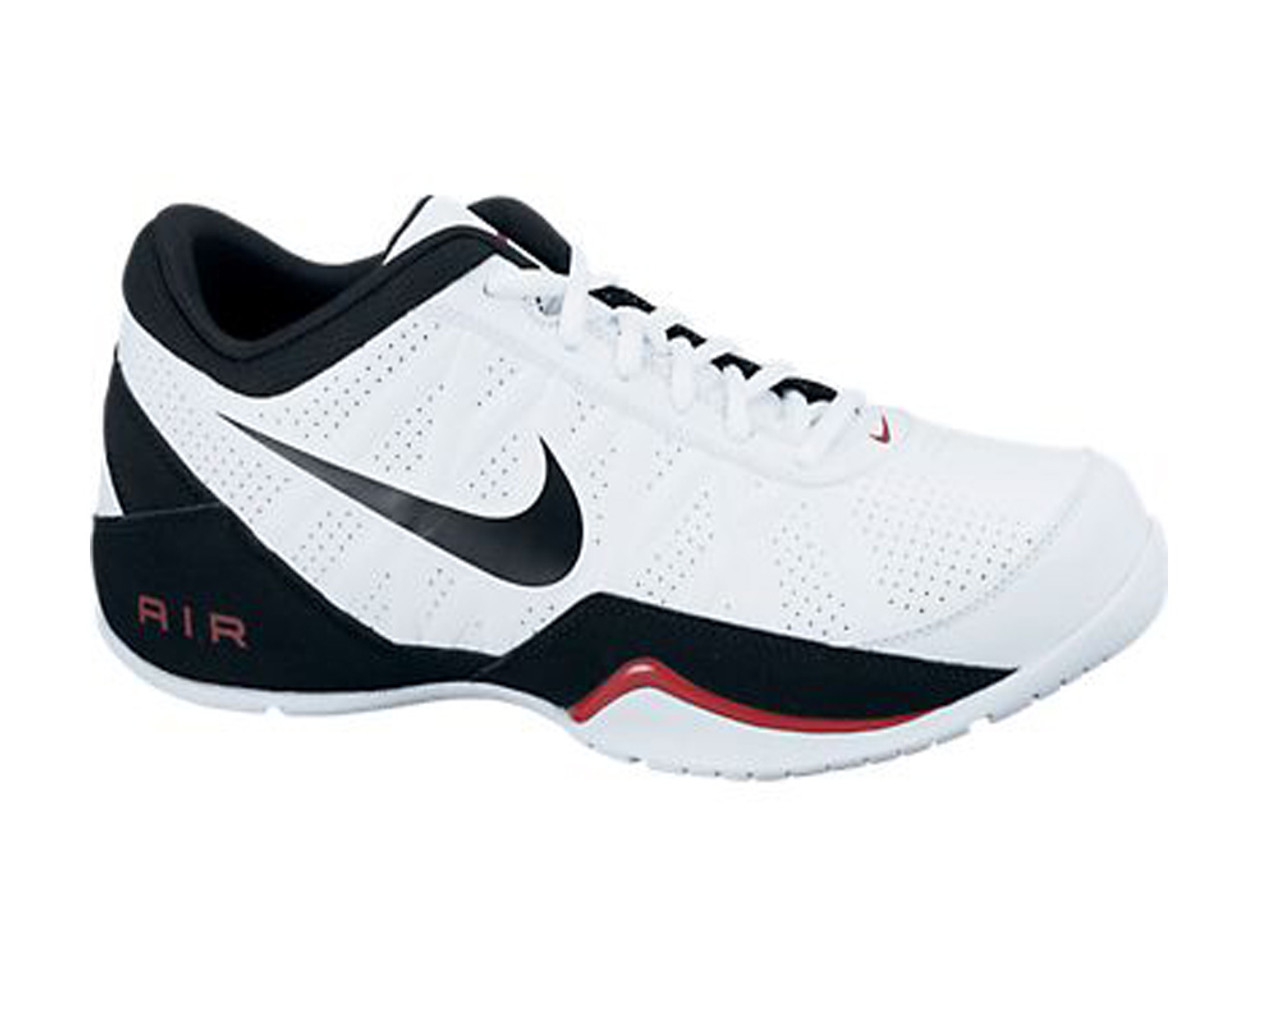 4a633944690fbe Nike Men s Air Ring Leader Low Basketball Shoes White Black - Shop now    Shoolu